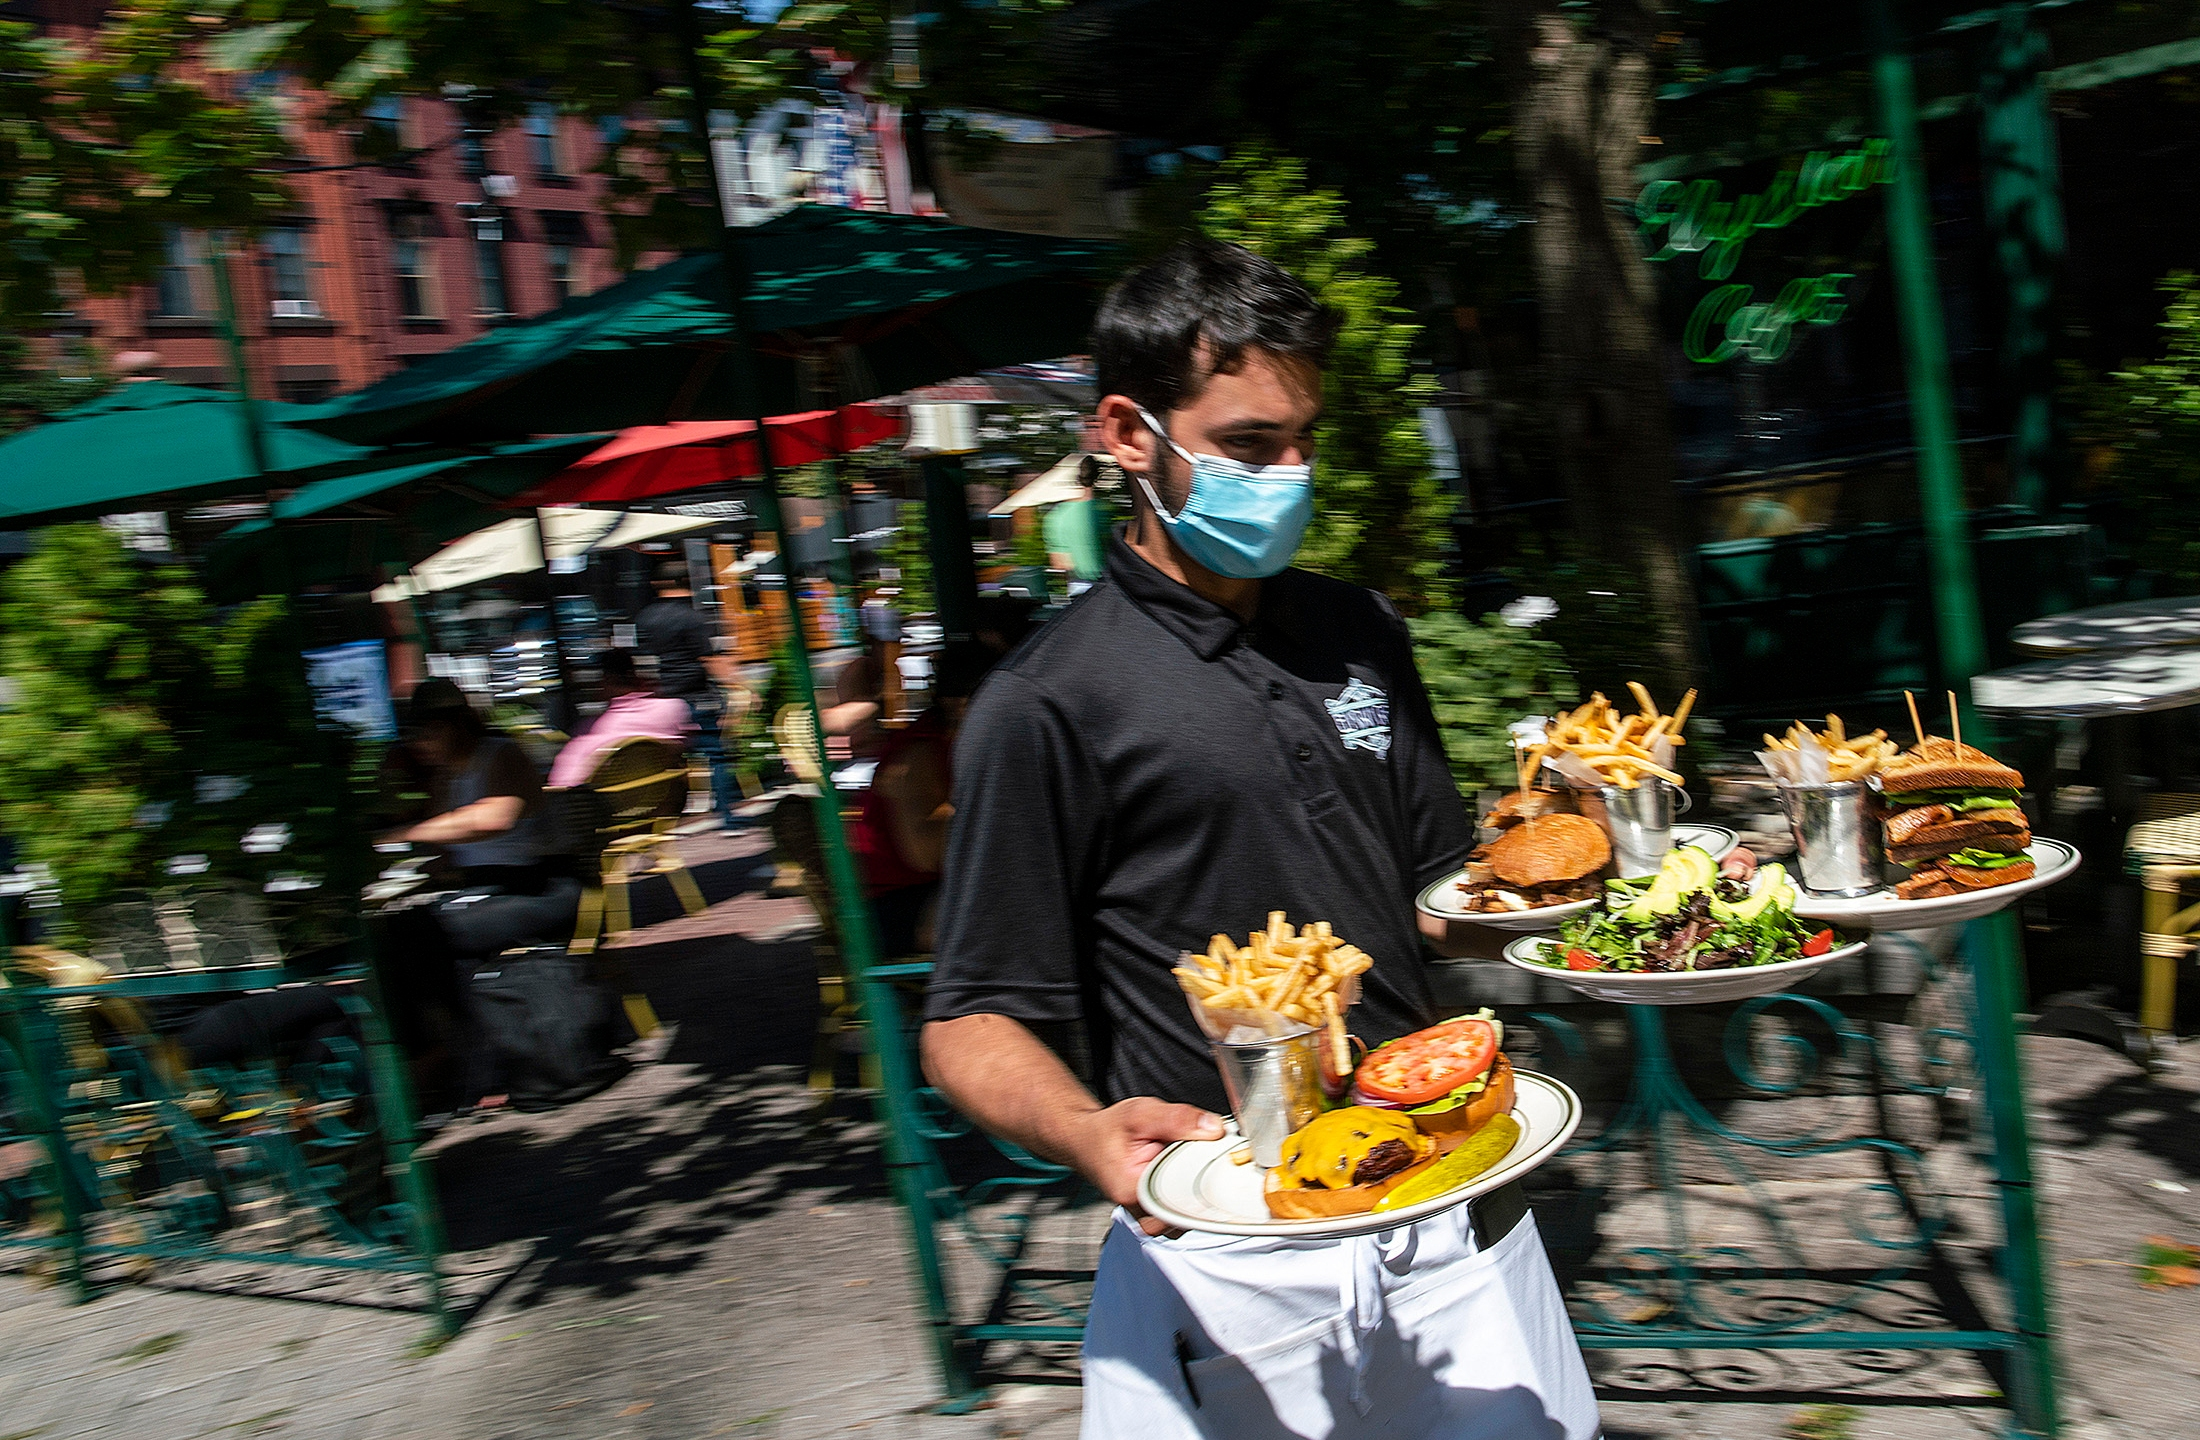 A waiter in a face mask delivers food to the tables outside of a local restaurant on Friday, Sept. 4, 2020, in Hoboken, New Jersey. (AP Photo/Eduardo Munoz Alvarez)